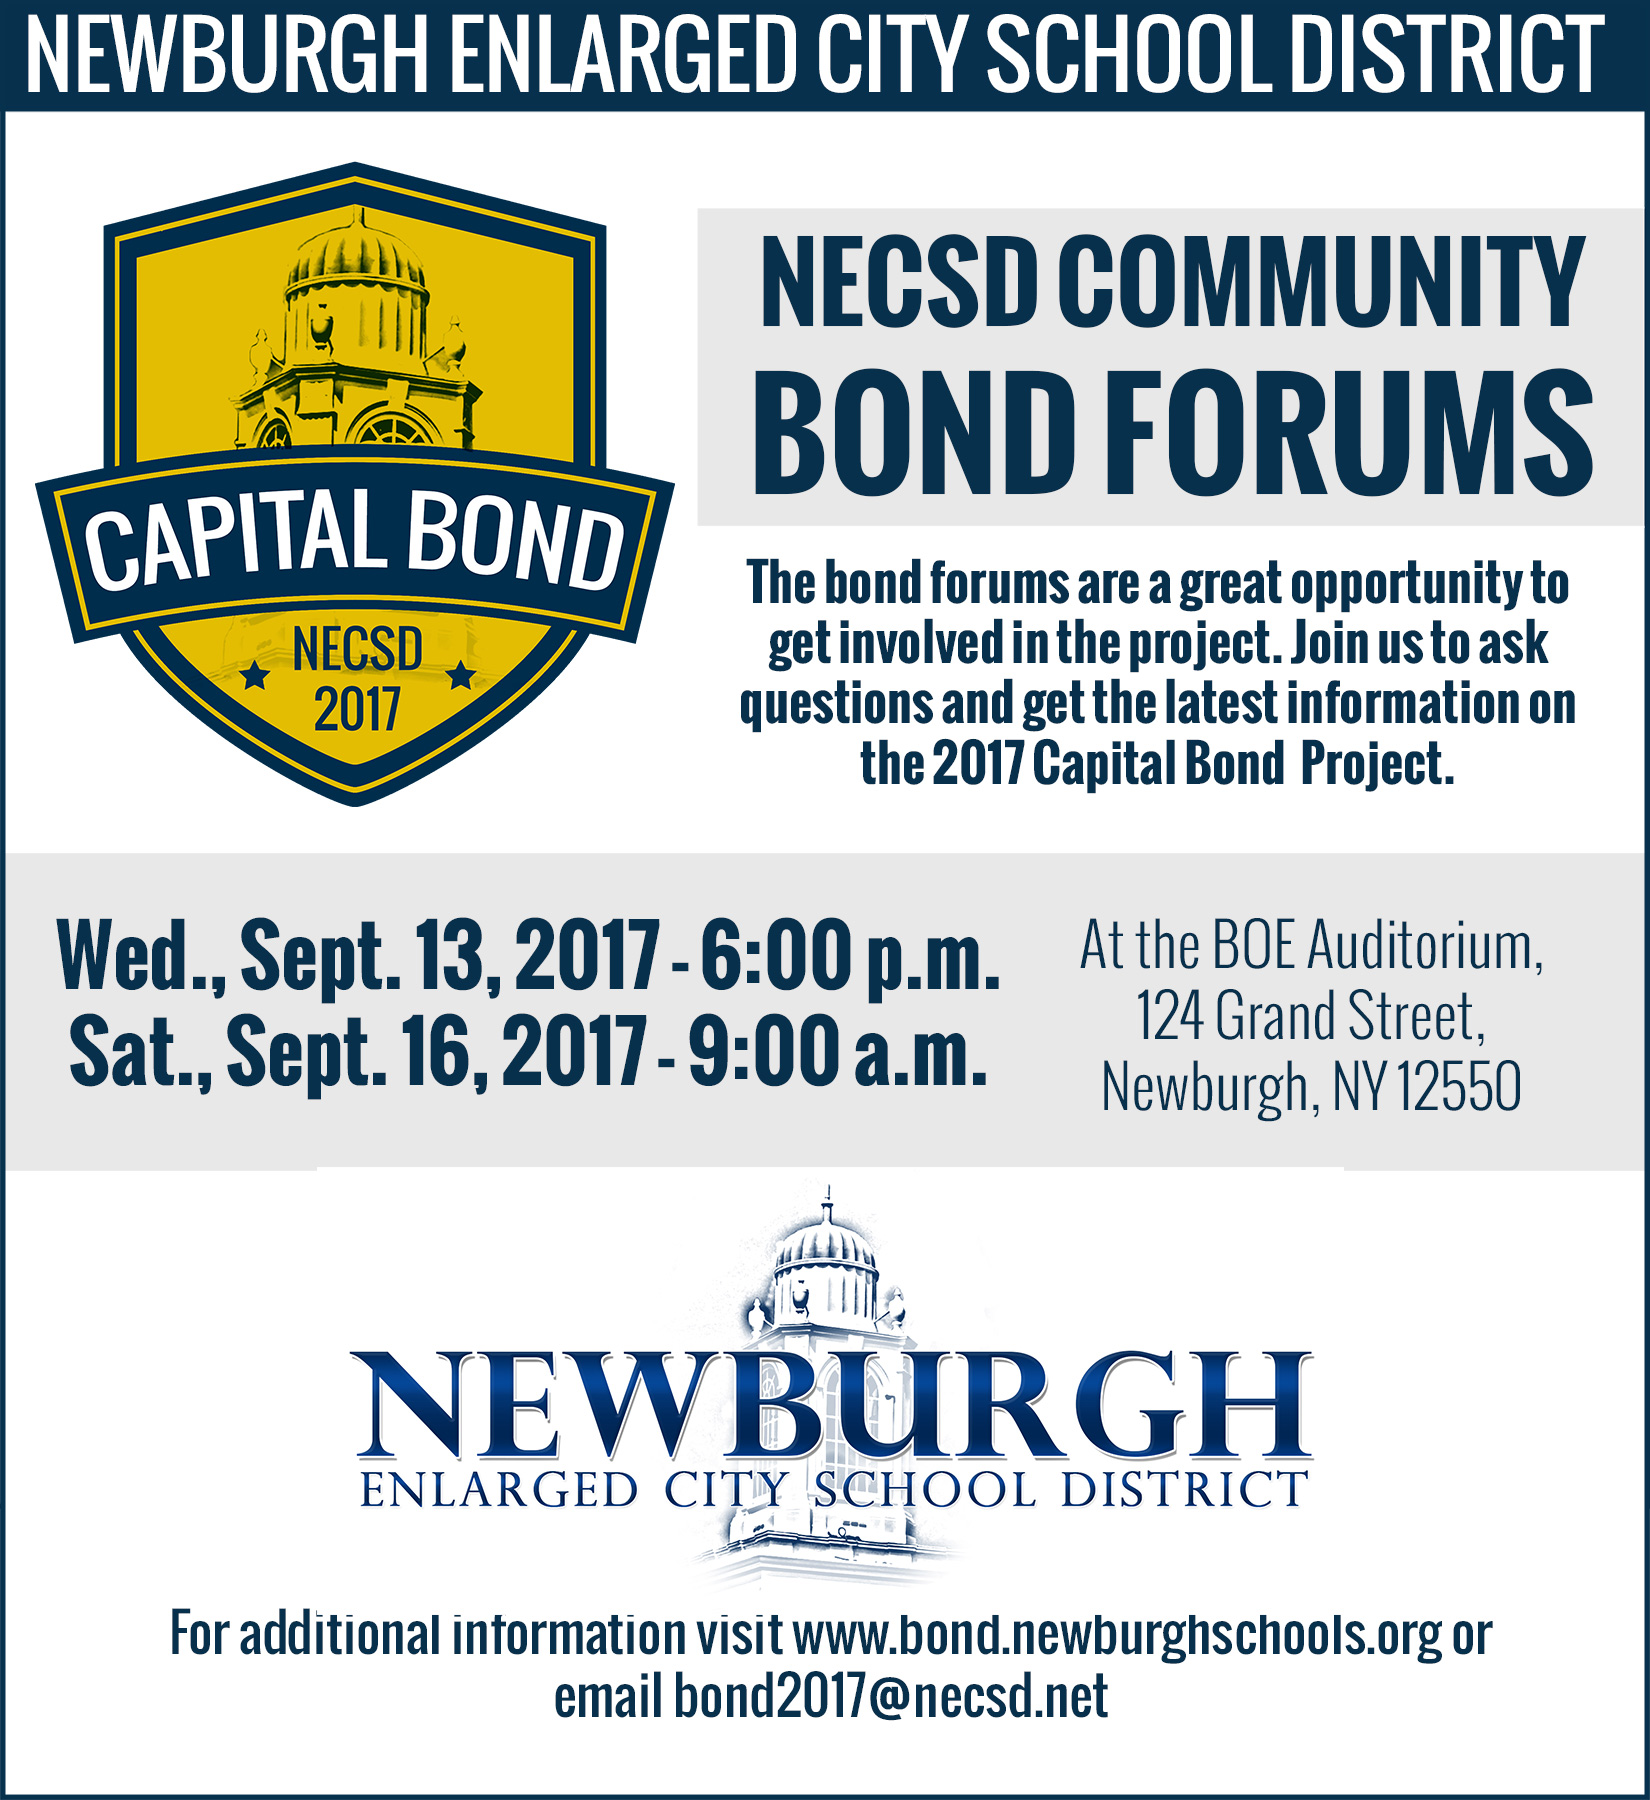 bond forum dates